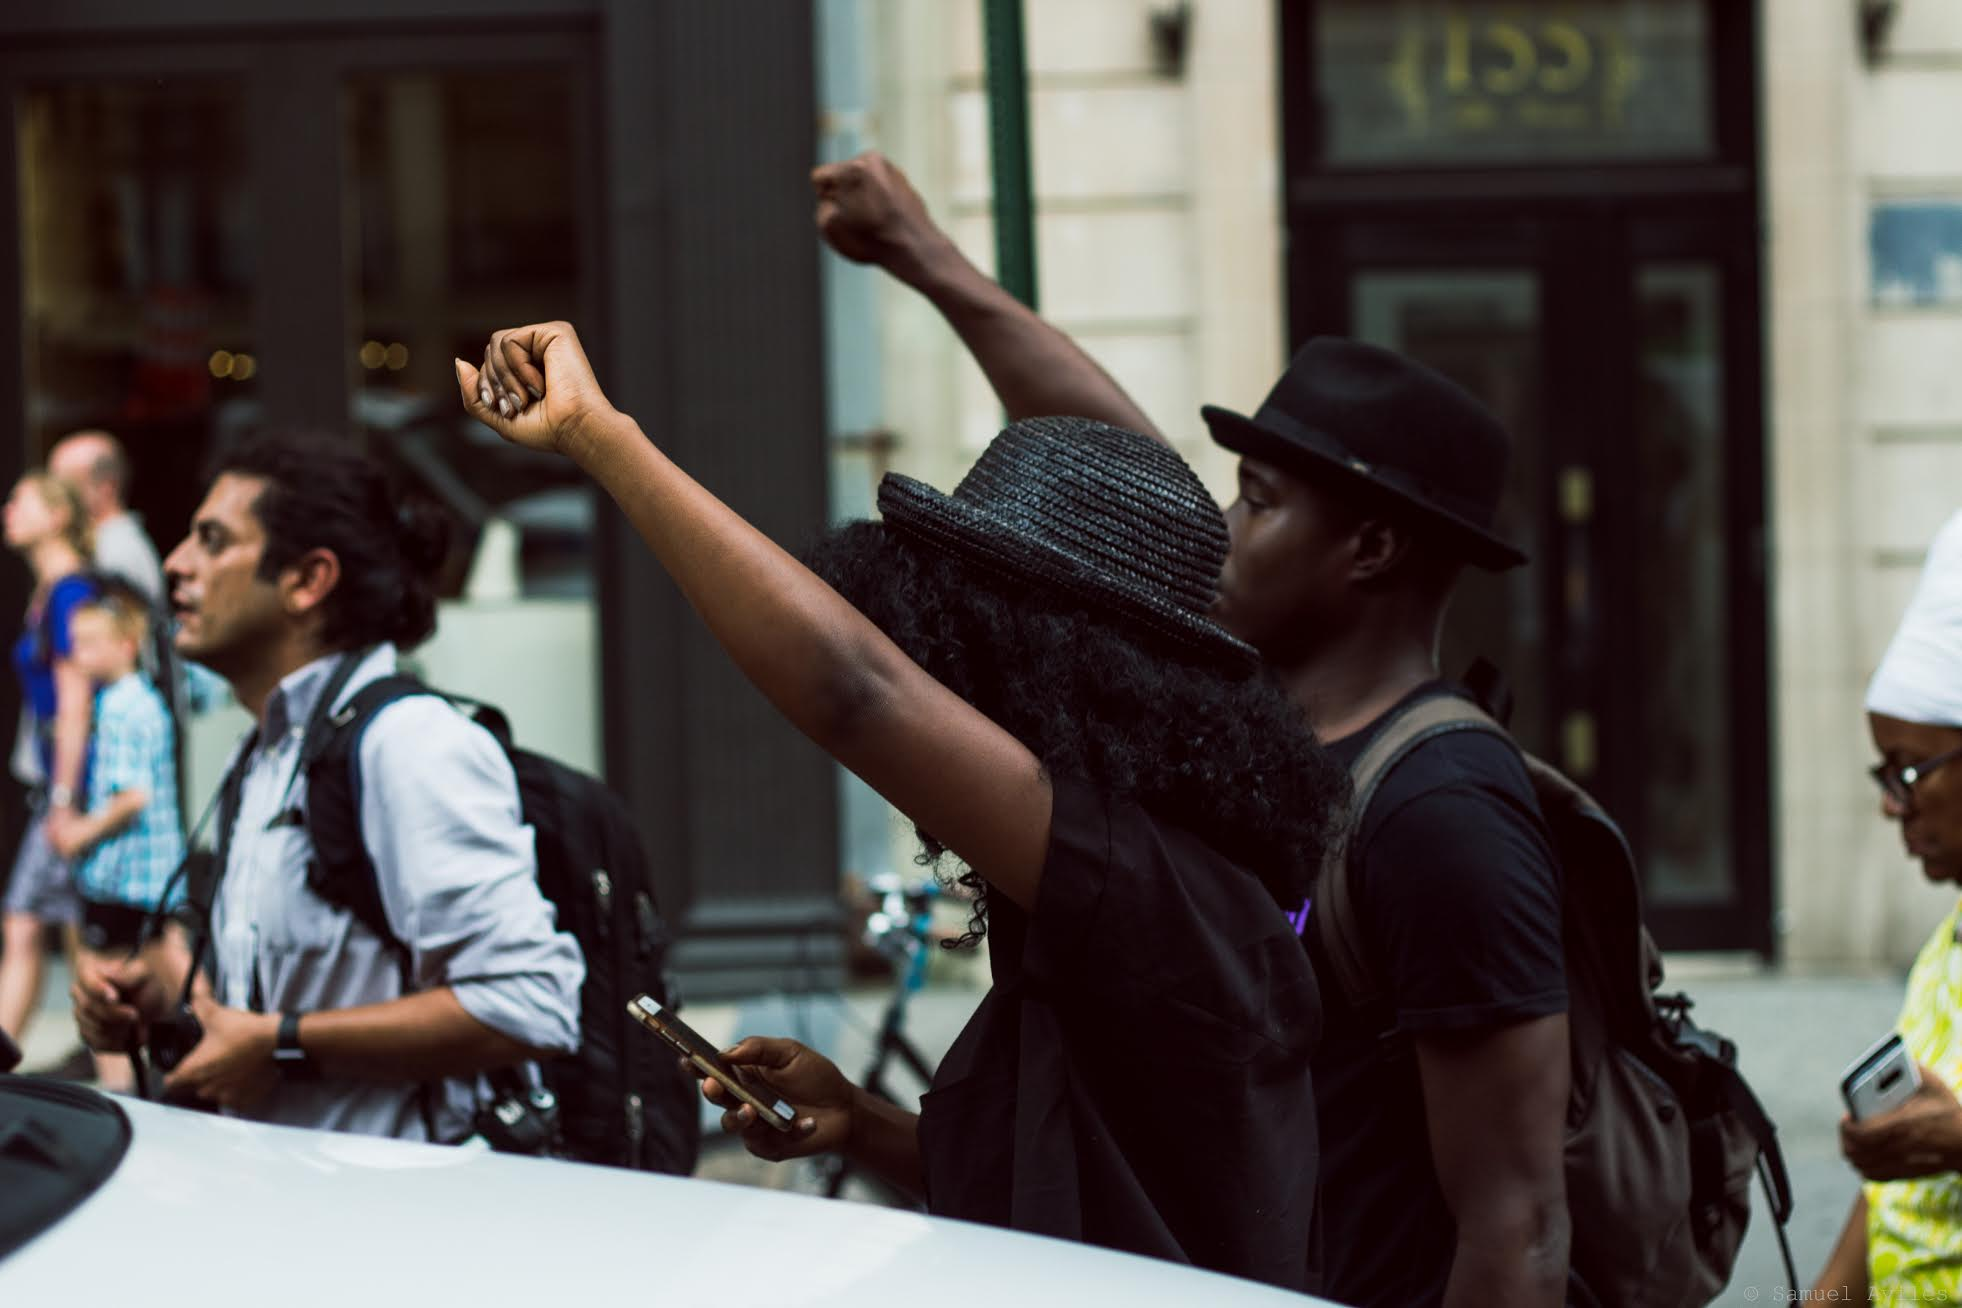 Pair marches in the street during Thursday July 7th, 2016 police brutality protests in Manhattan, New York. The protest is in response to the two recent shootings of black men by the police.